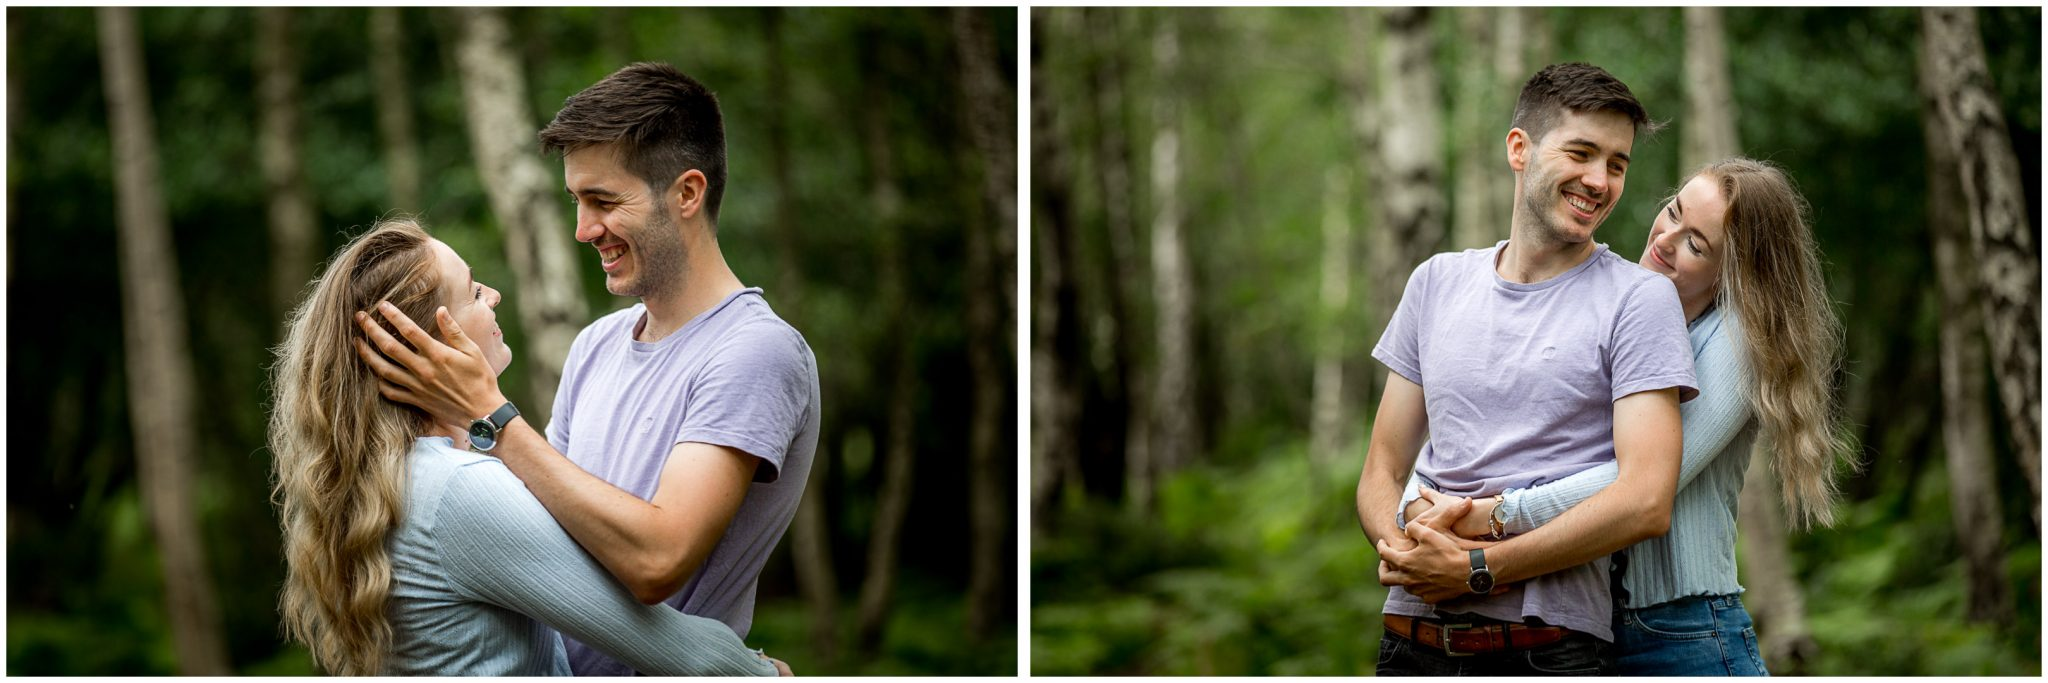 New Forest pre-wedding shoot 05